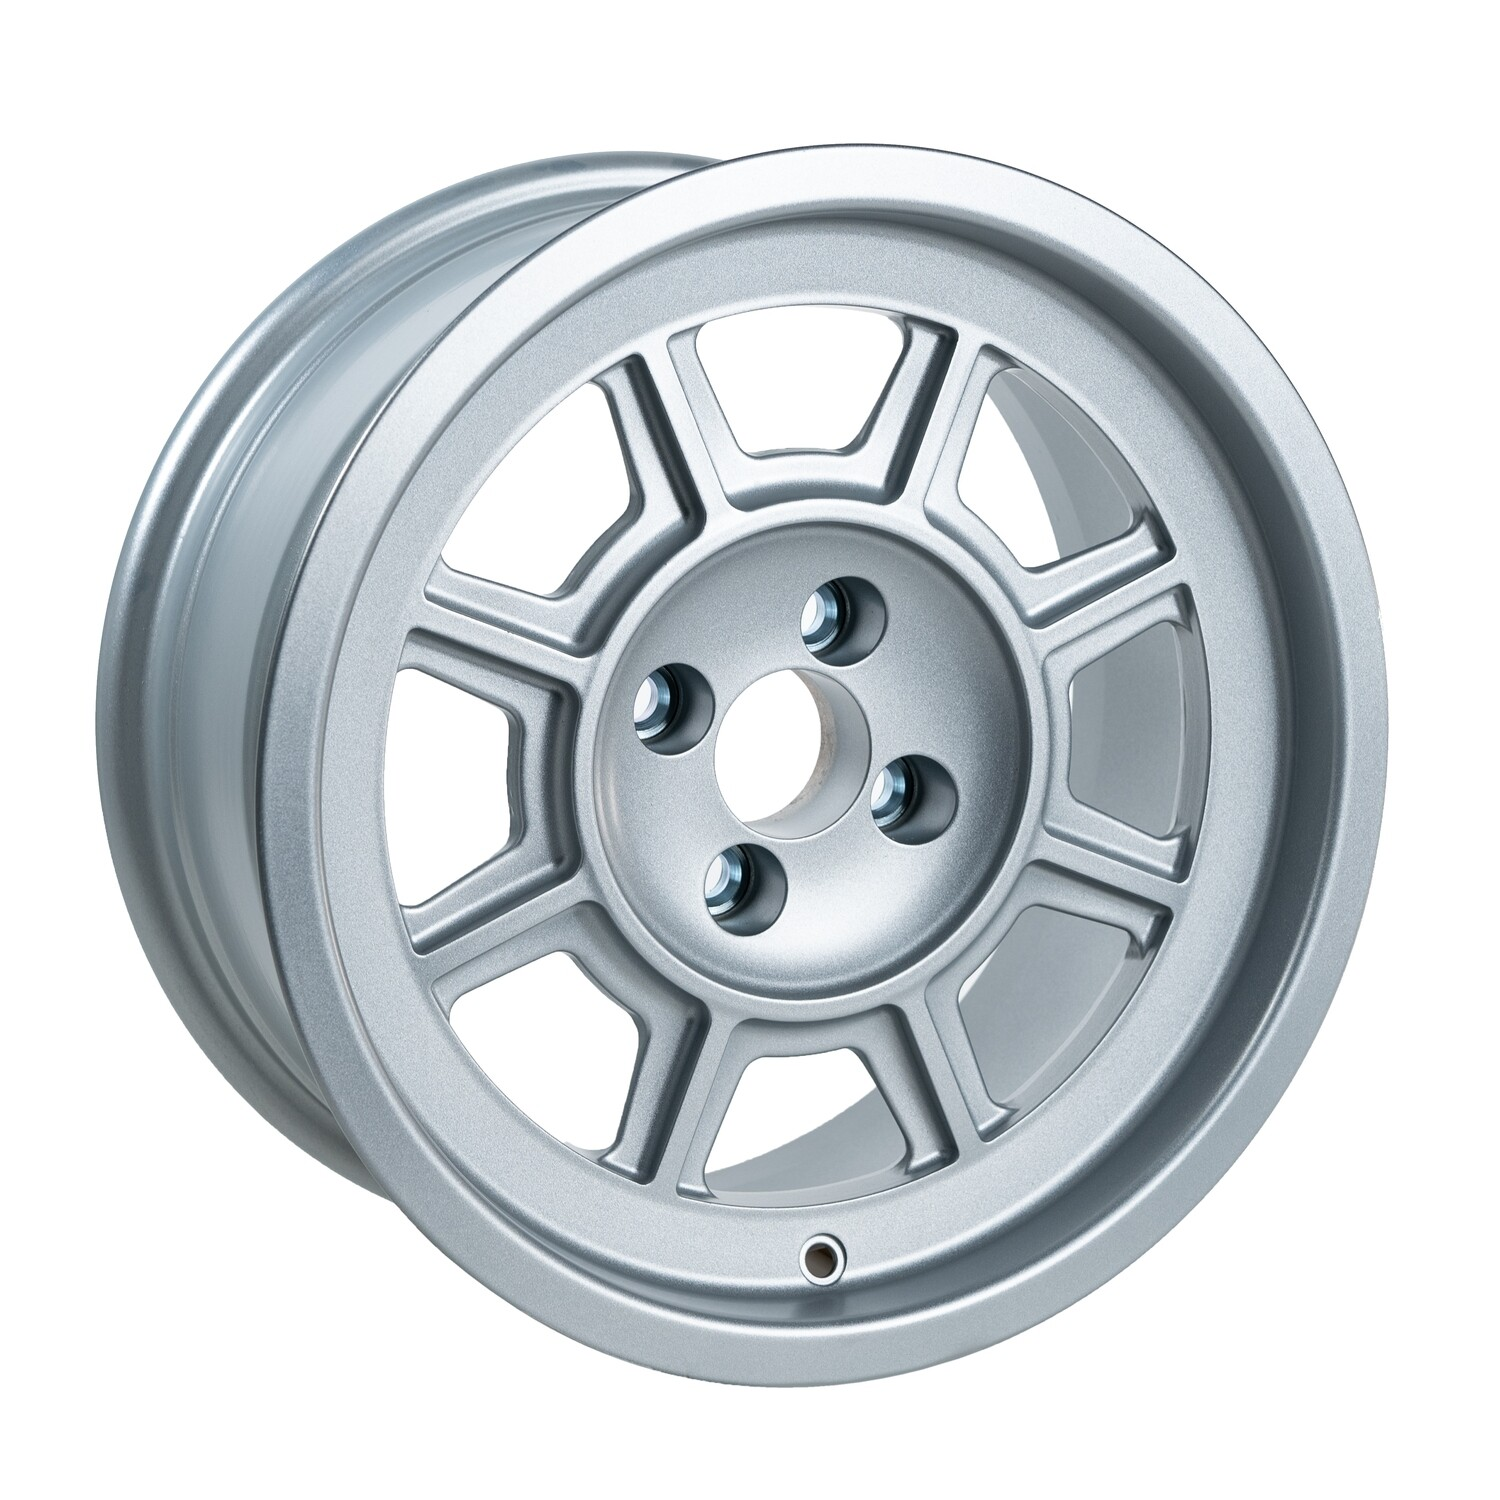 PAG1570F Satin Silver 15 x 7